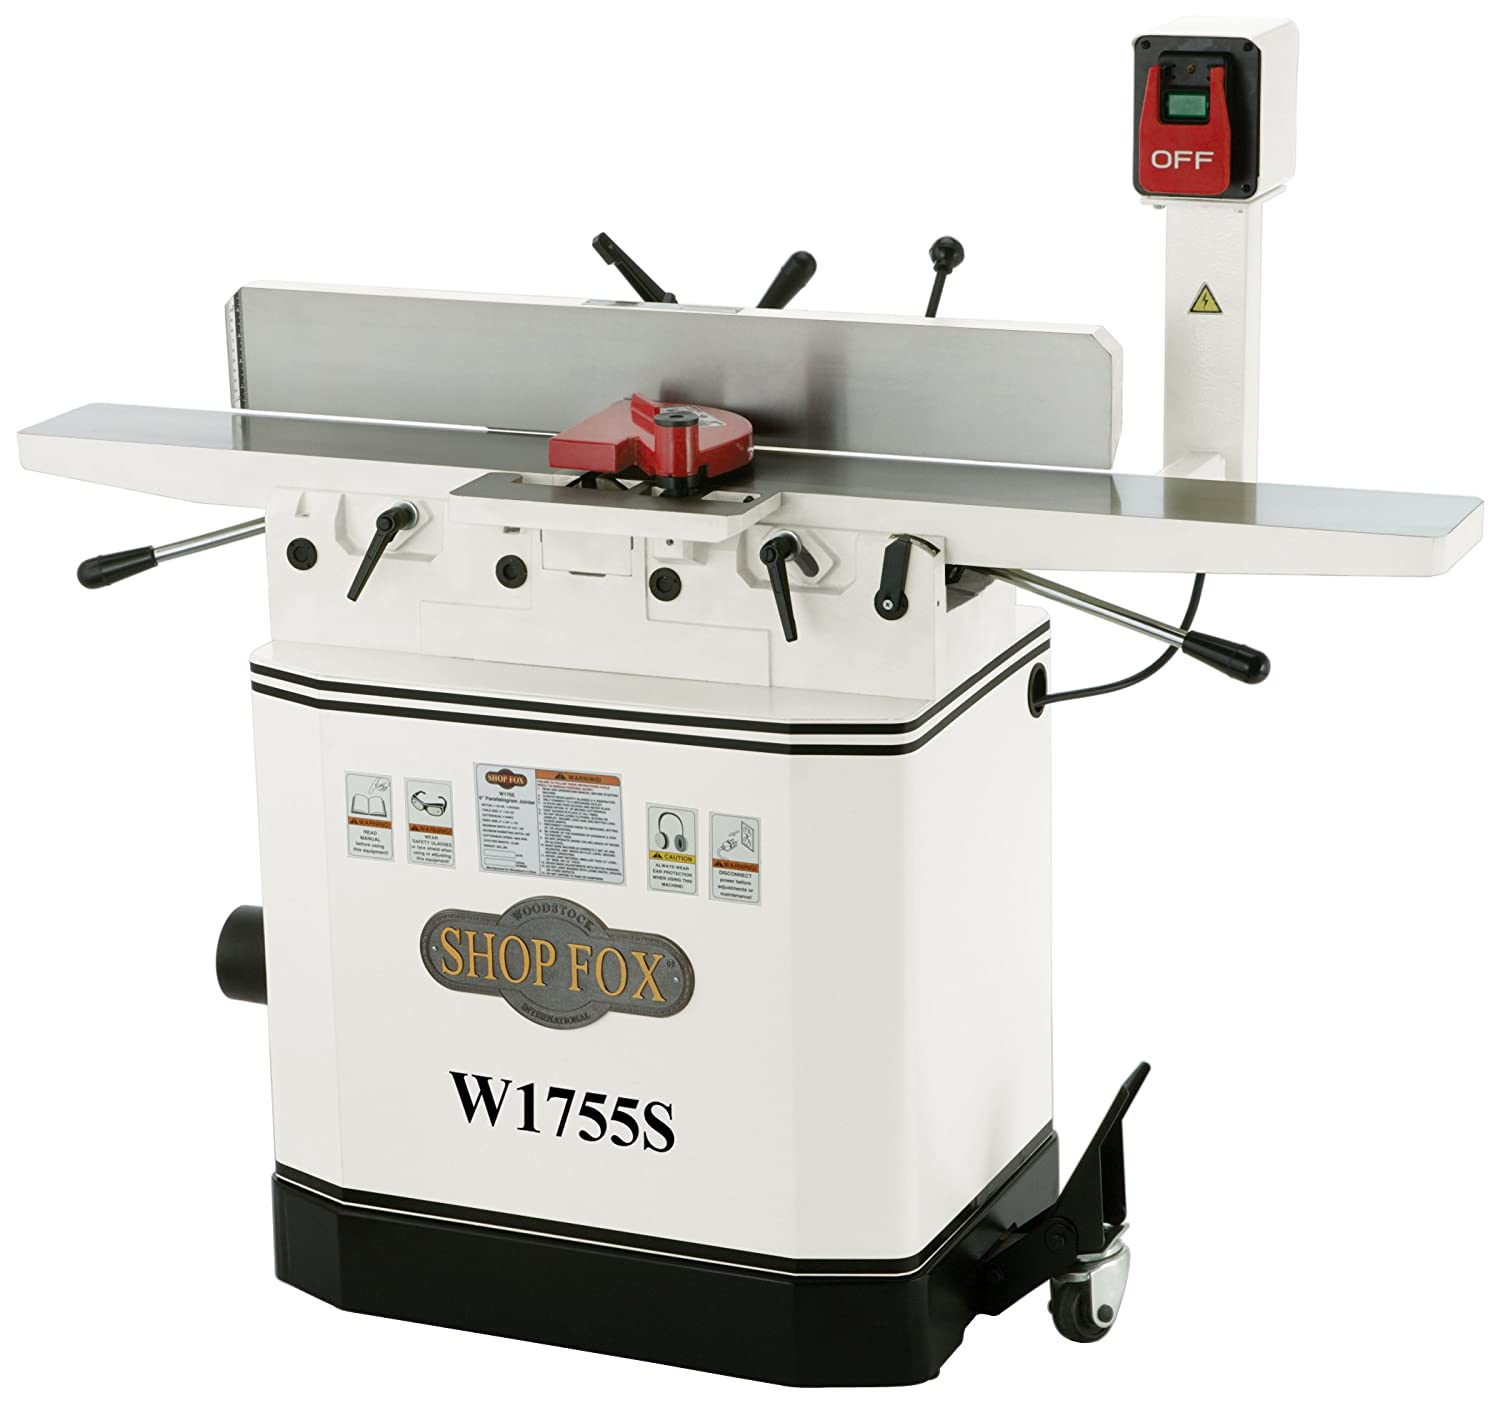 Shop Fox W1755S 6-Inch Jointer With Spiral Cutterhead